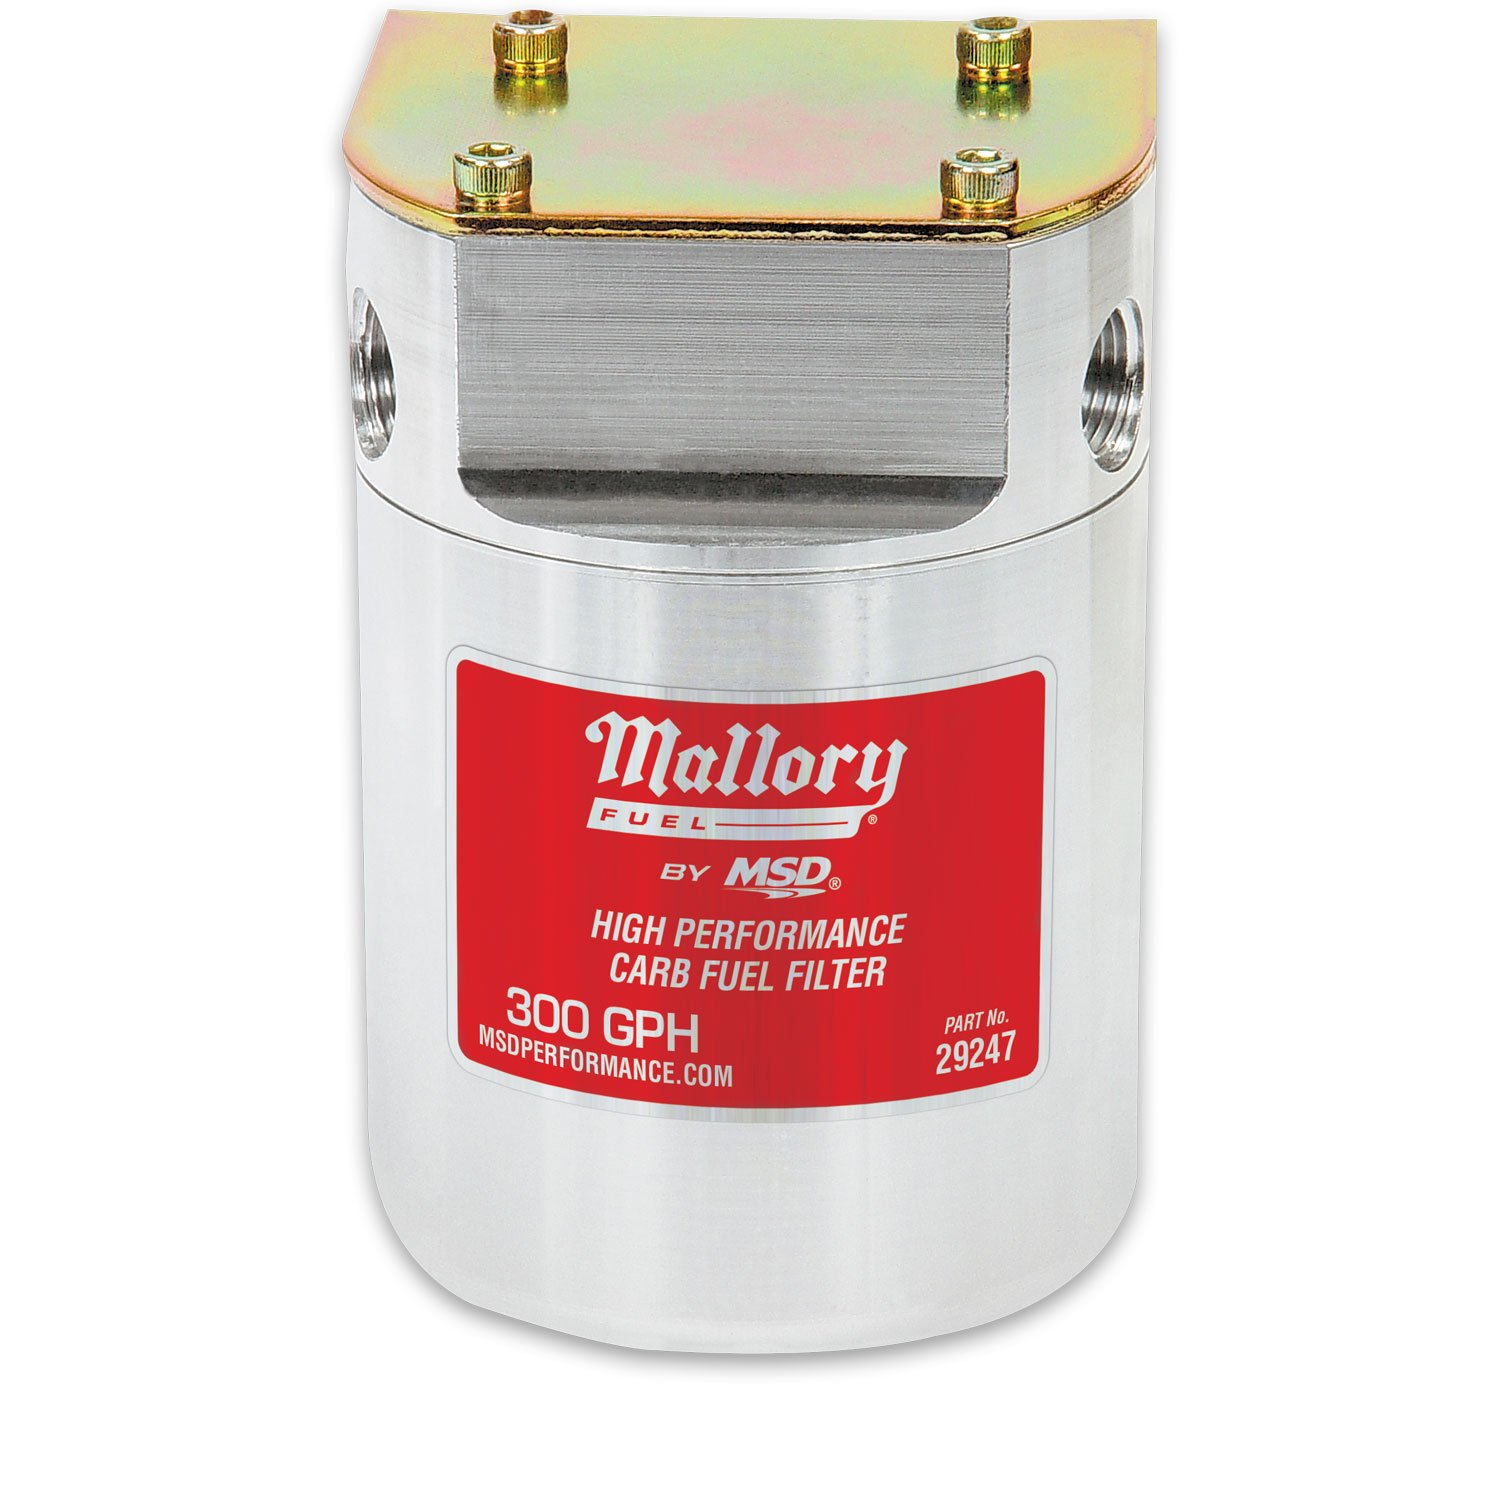 engine water filter, mallory water separator, mallory marine filters, mallory efi, mallory rotor, on mallory fuel filters